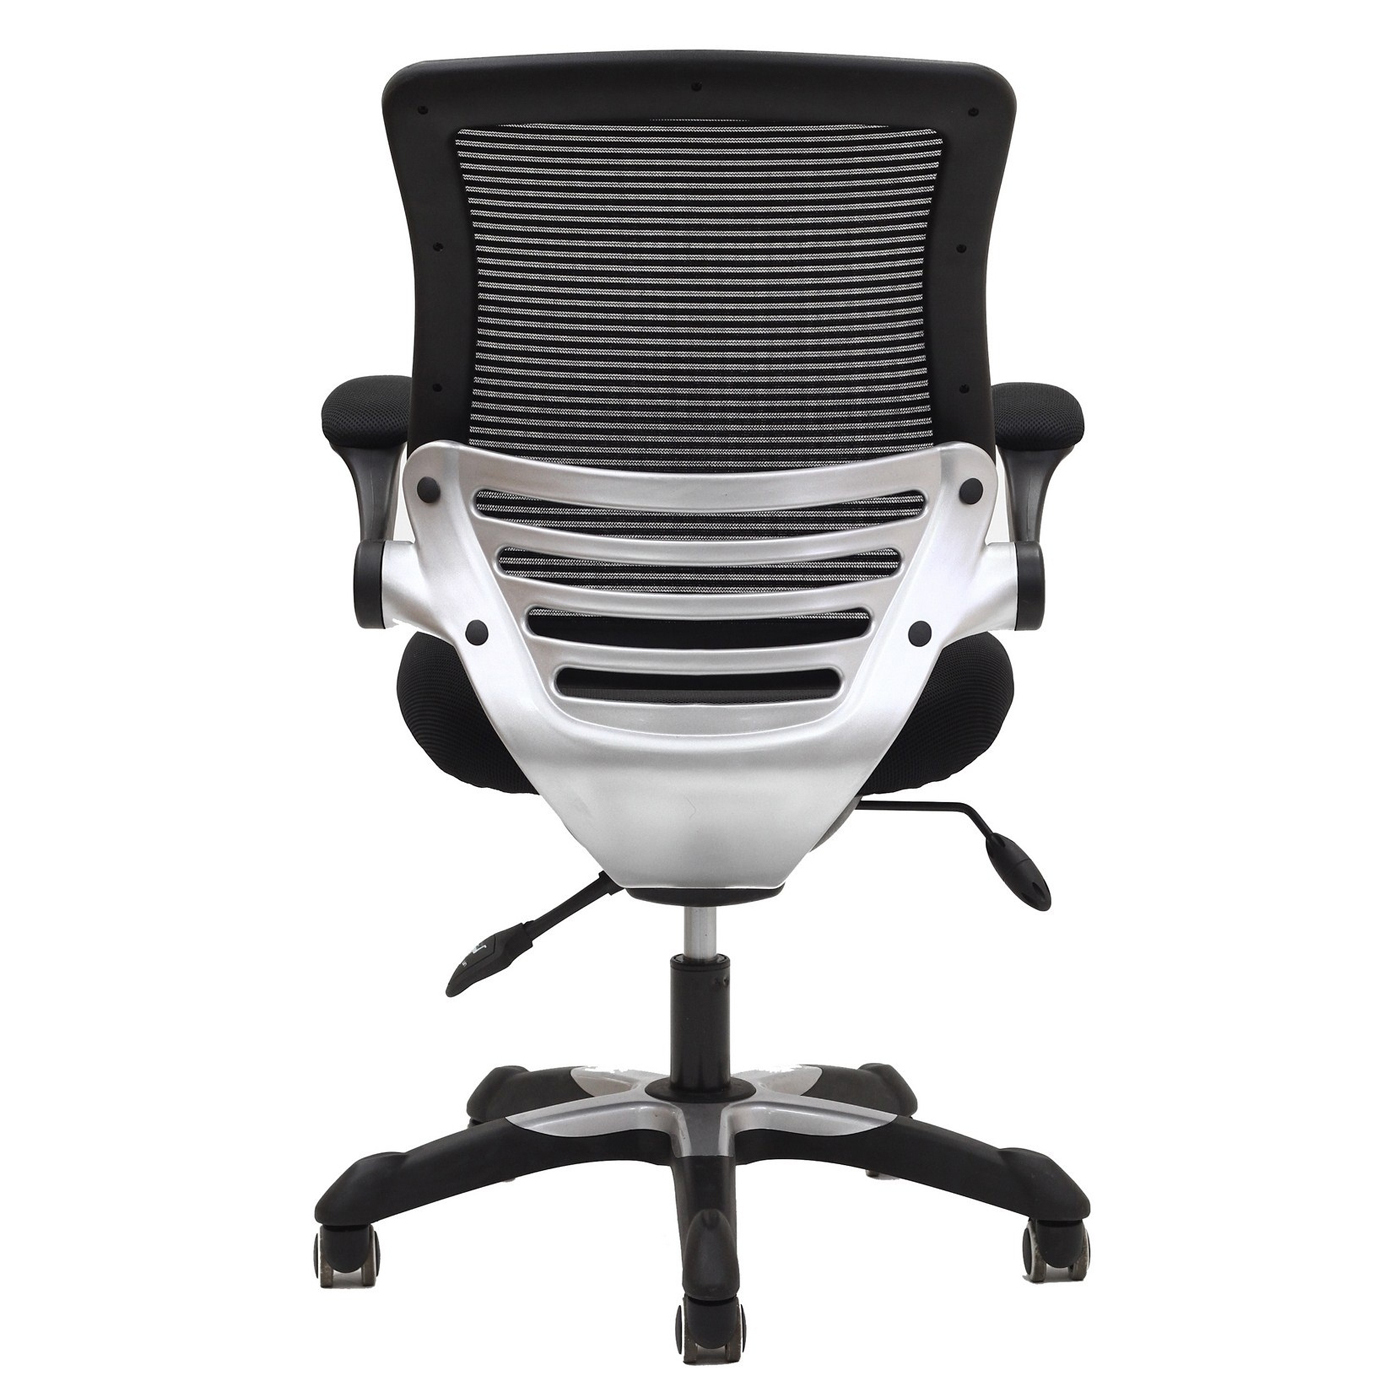 Office Computer Desk Swivel Chair With Mesh Back - Desks & Home Office